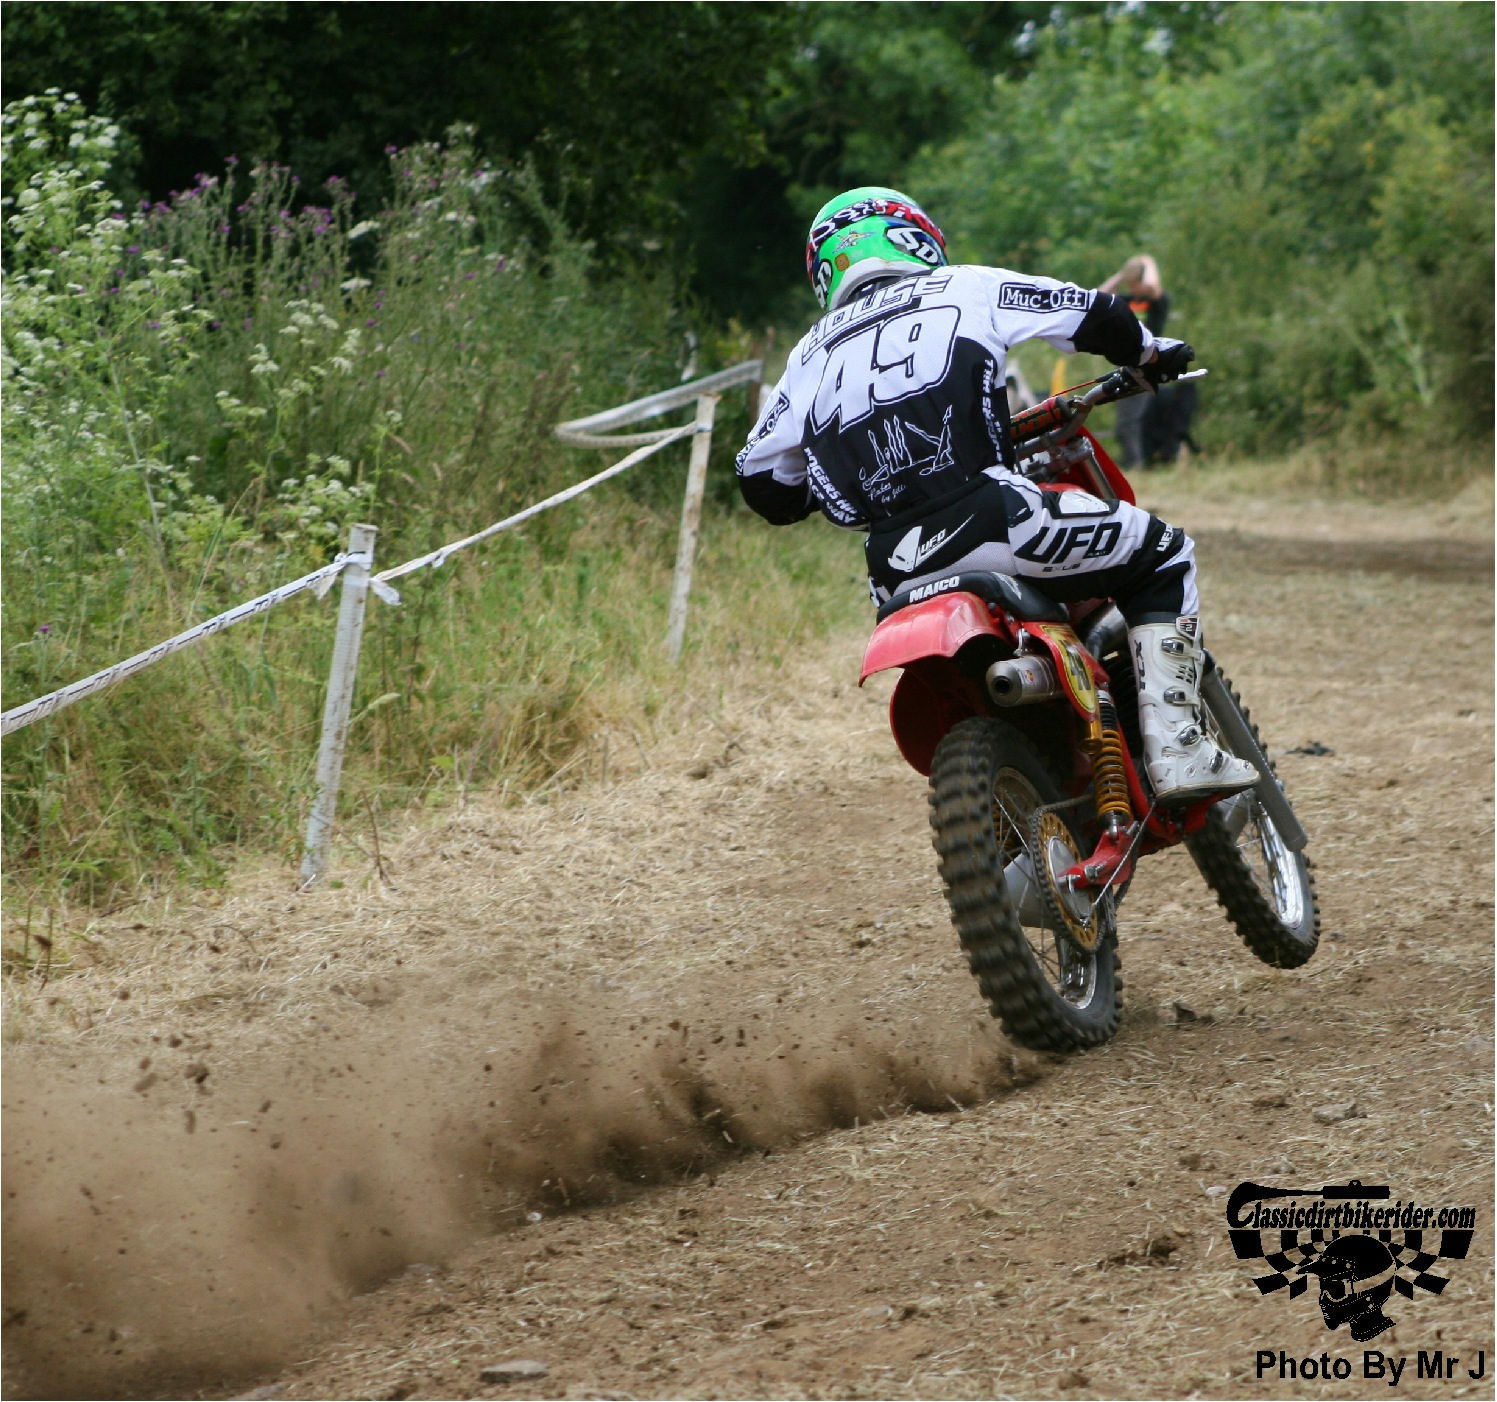 king of the castle 2015 photos Farleigh Castle twinshock motocross classicdirtbikerider.com 107